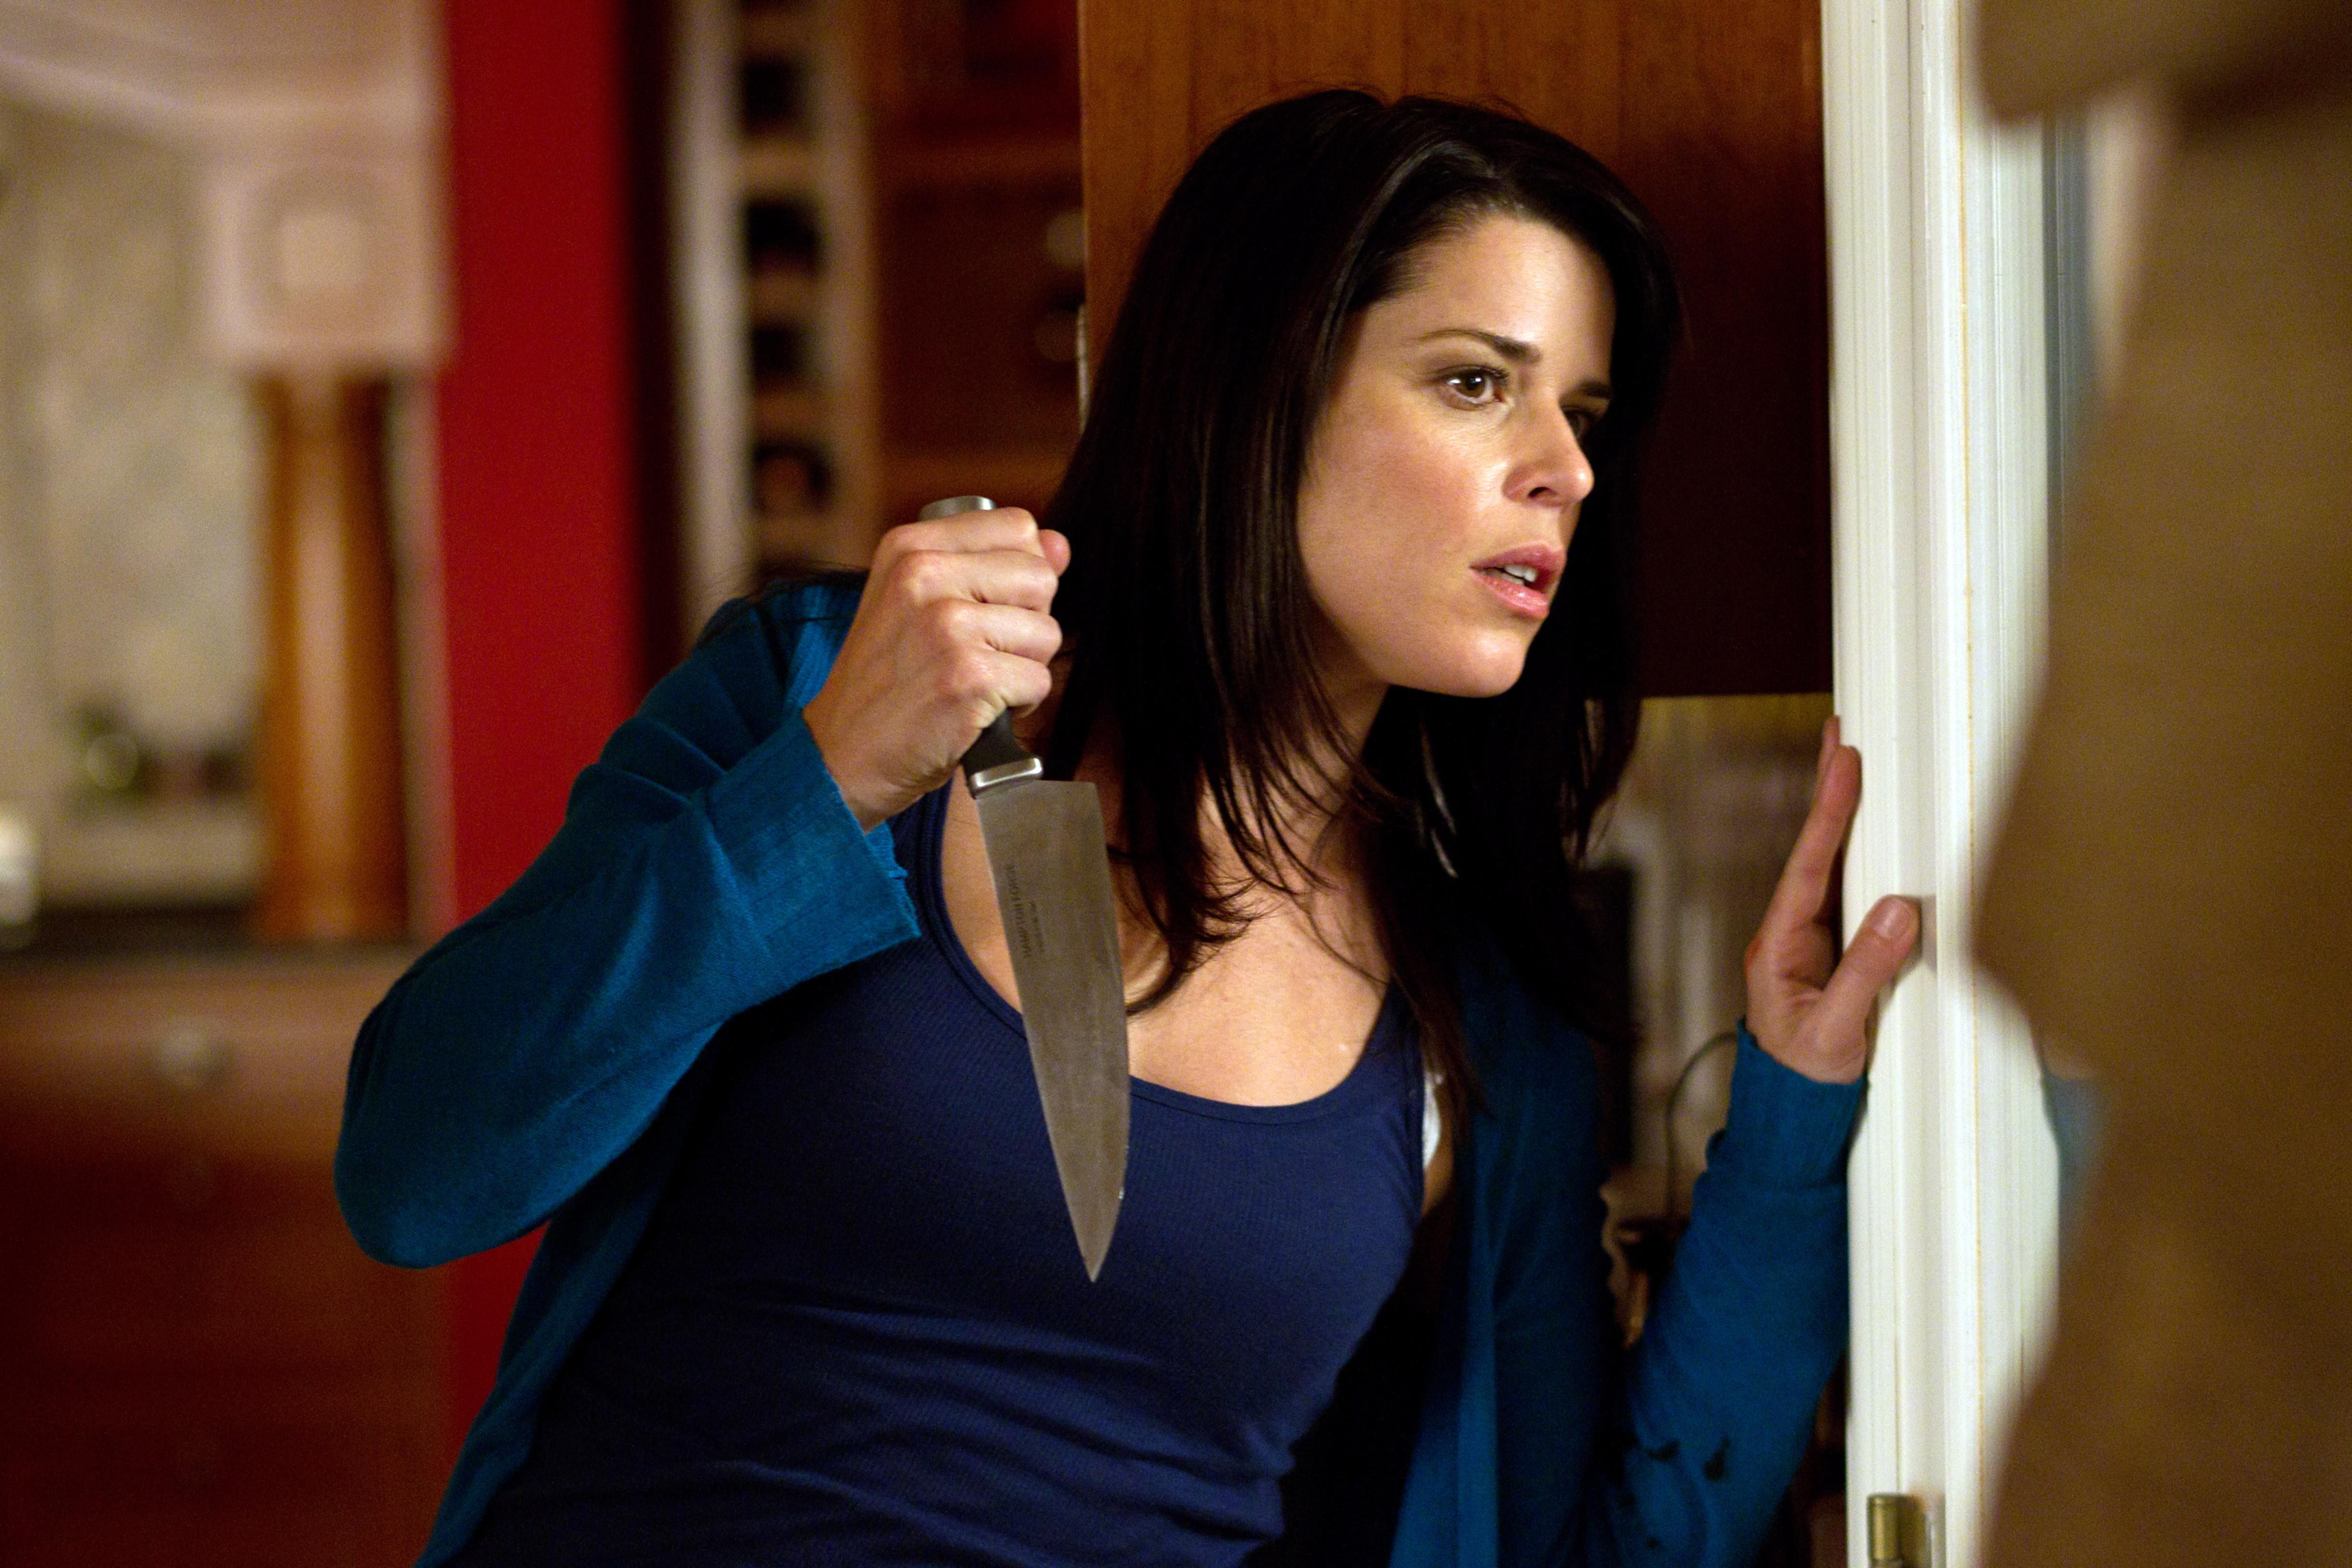 Lock Your Doors Terrifying Home Invasion Movies